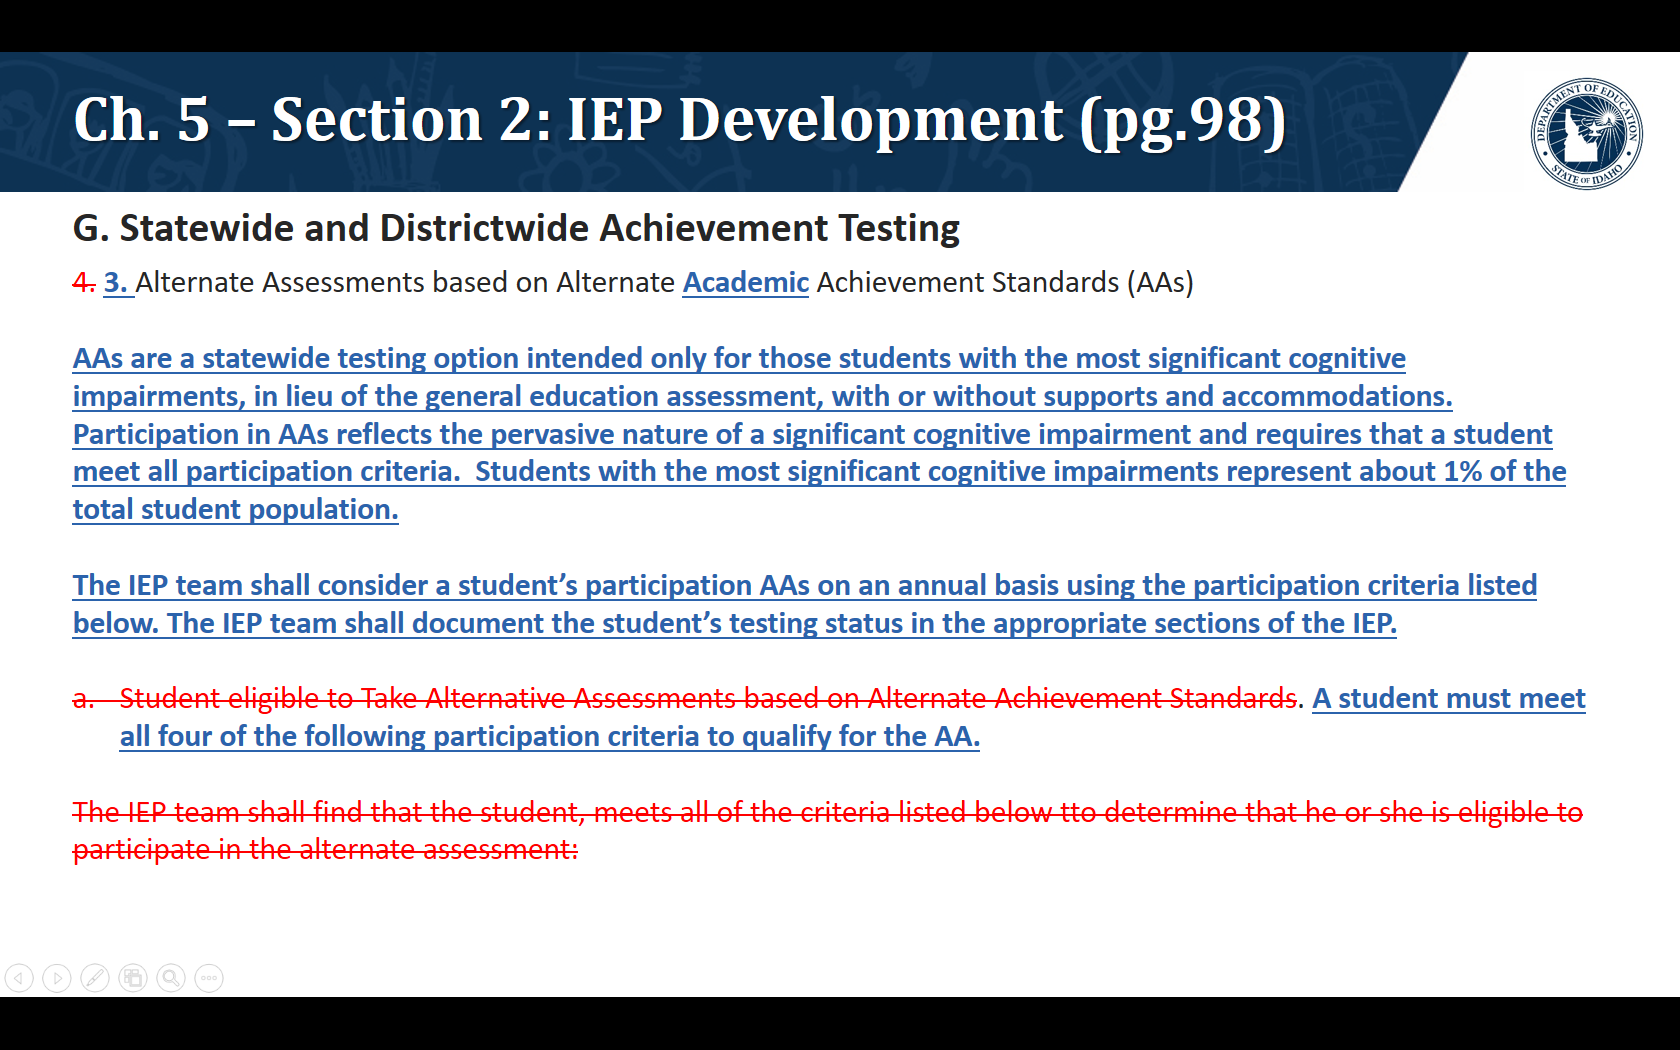 G. Statewide and Districtwide Achievement Testing. 3. Alternate Assessments based on Alternate Academic Achievement Standards (AAs)  AAs are a statewide testing option intended only for those students with the most significant cognitive impairments, in lieu of the general education assessment, with or without supports and accommodations.  Participation in AAs reflects the pervasive nature of a significant cognitive impairment and requires that a student meet all participation criteria.  Students with the most significant cognitive impairments represent about 1% of the total student population.  The IEP team shall consider a student's participation AAs on an annual basis using the participation criteria listed below. The IEP team shall document the student's testing status in the appropriate sections of the IEP.  A student must meet all four of the following participation criteria to qualify for the AA.